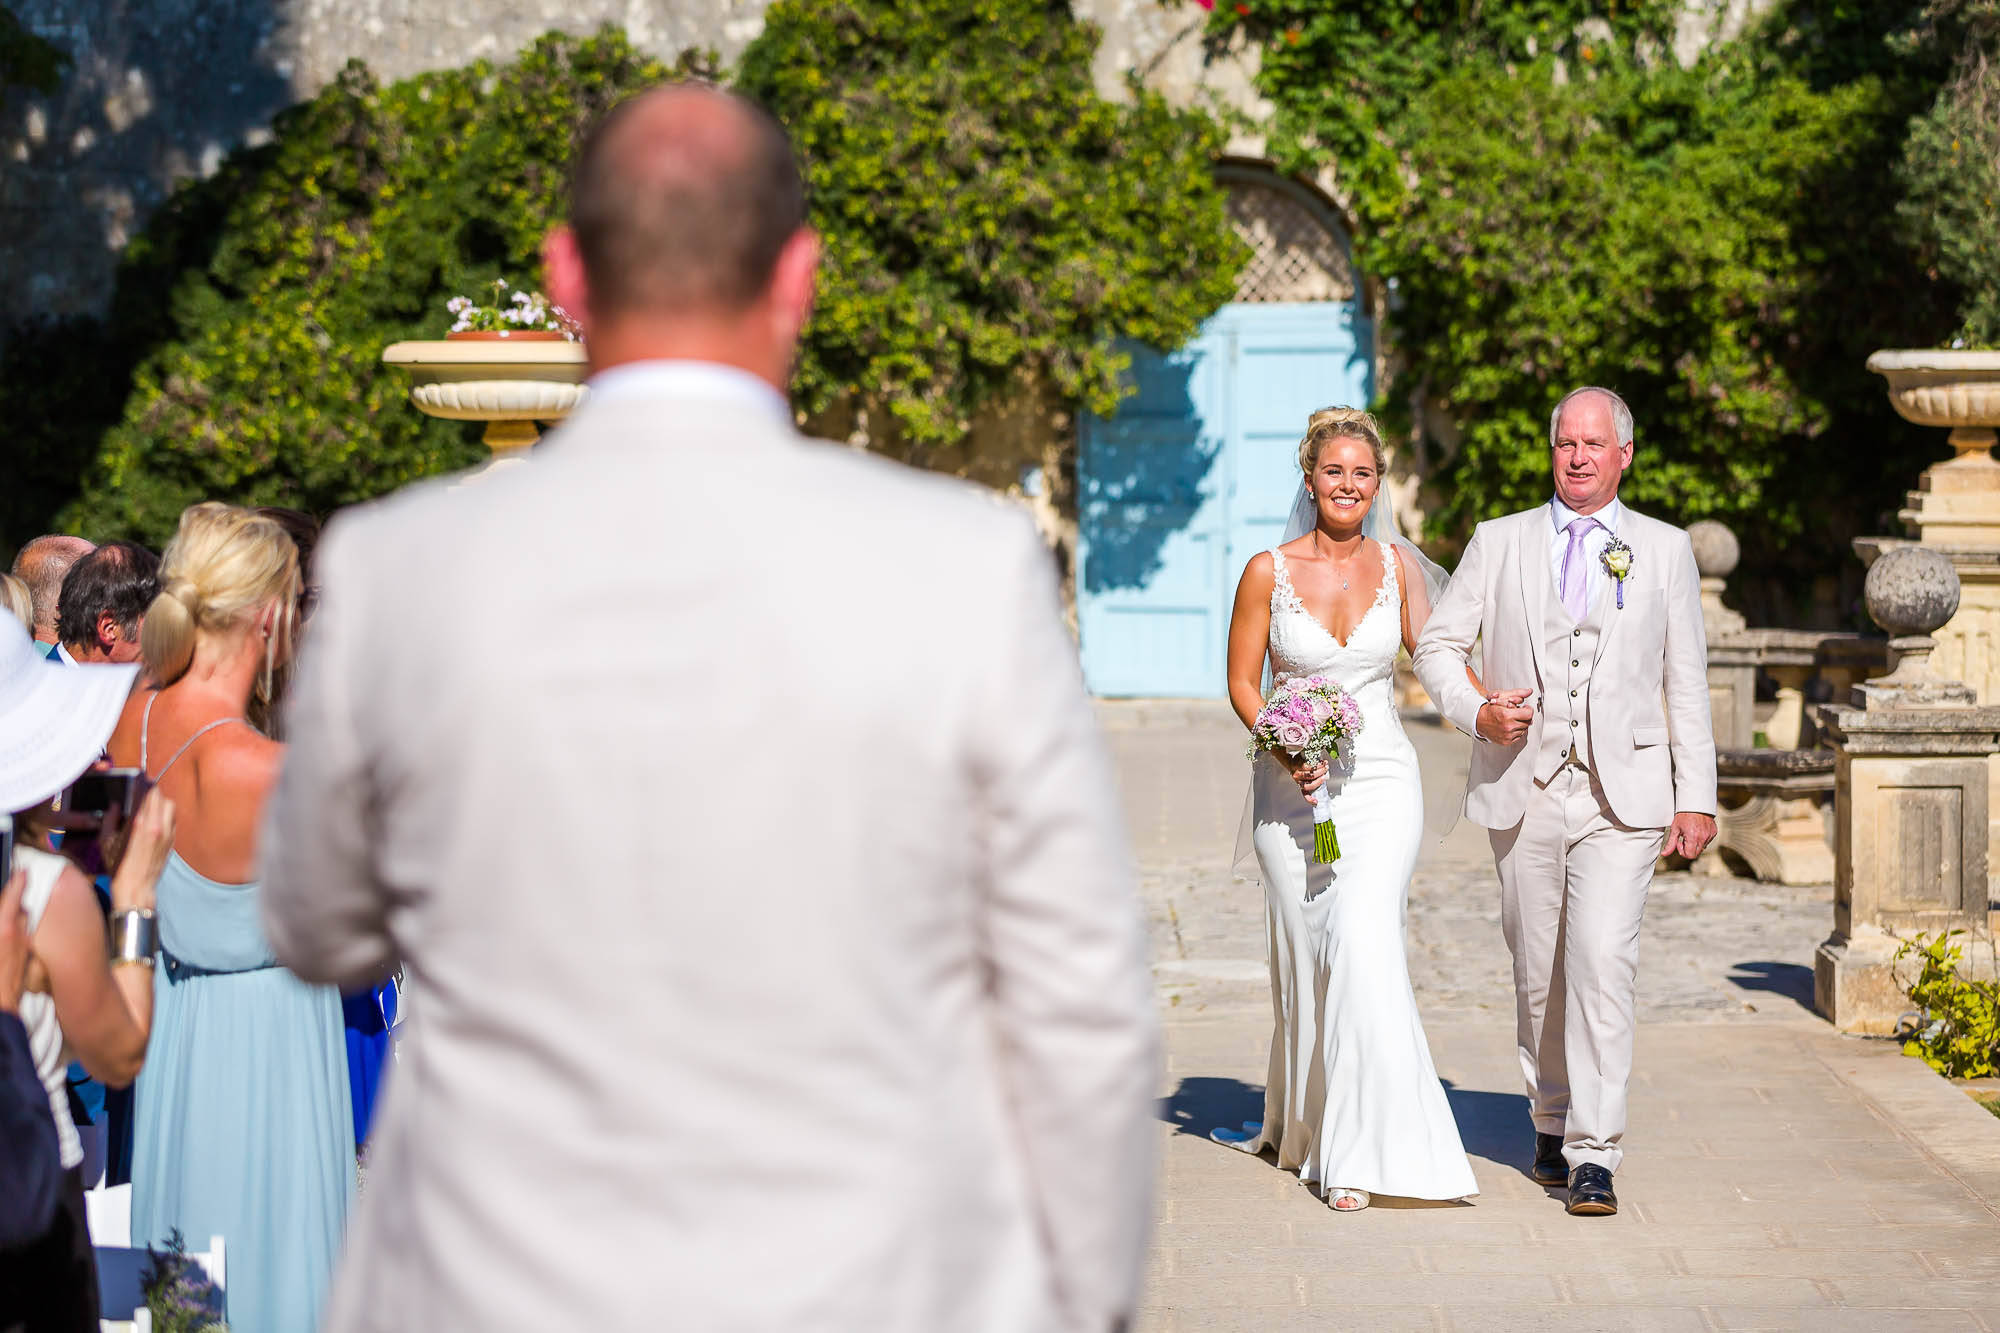 Bride arrives at the garden civil ceremony with her father. Photo by North East wedding photographer Elliot Nichol.